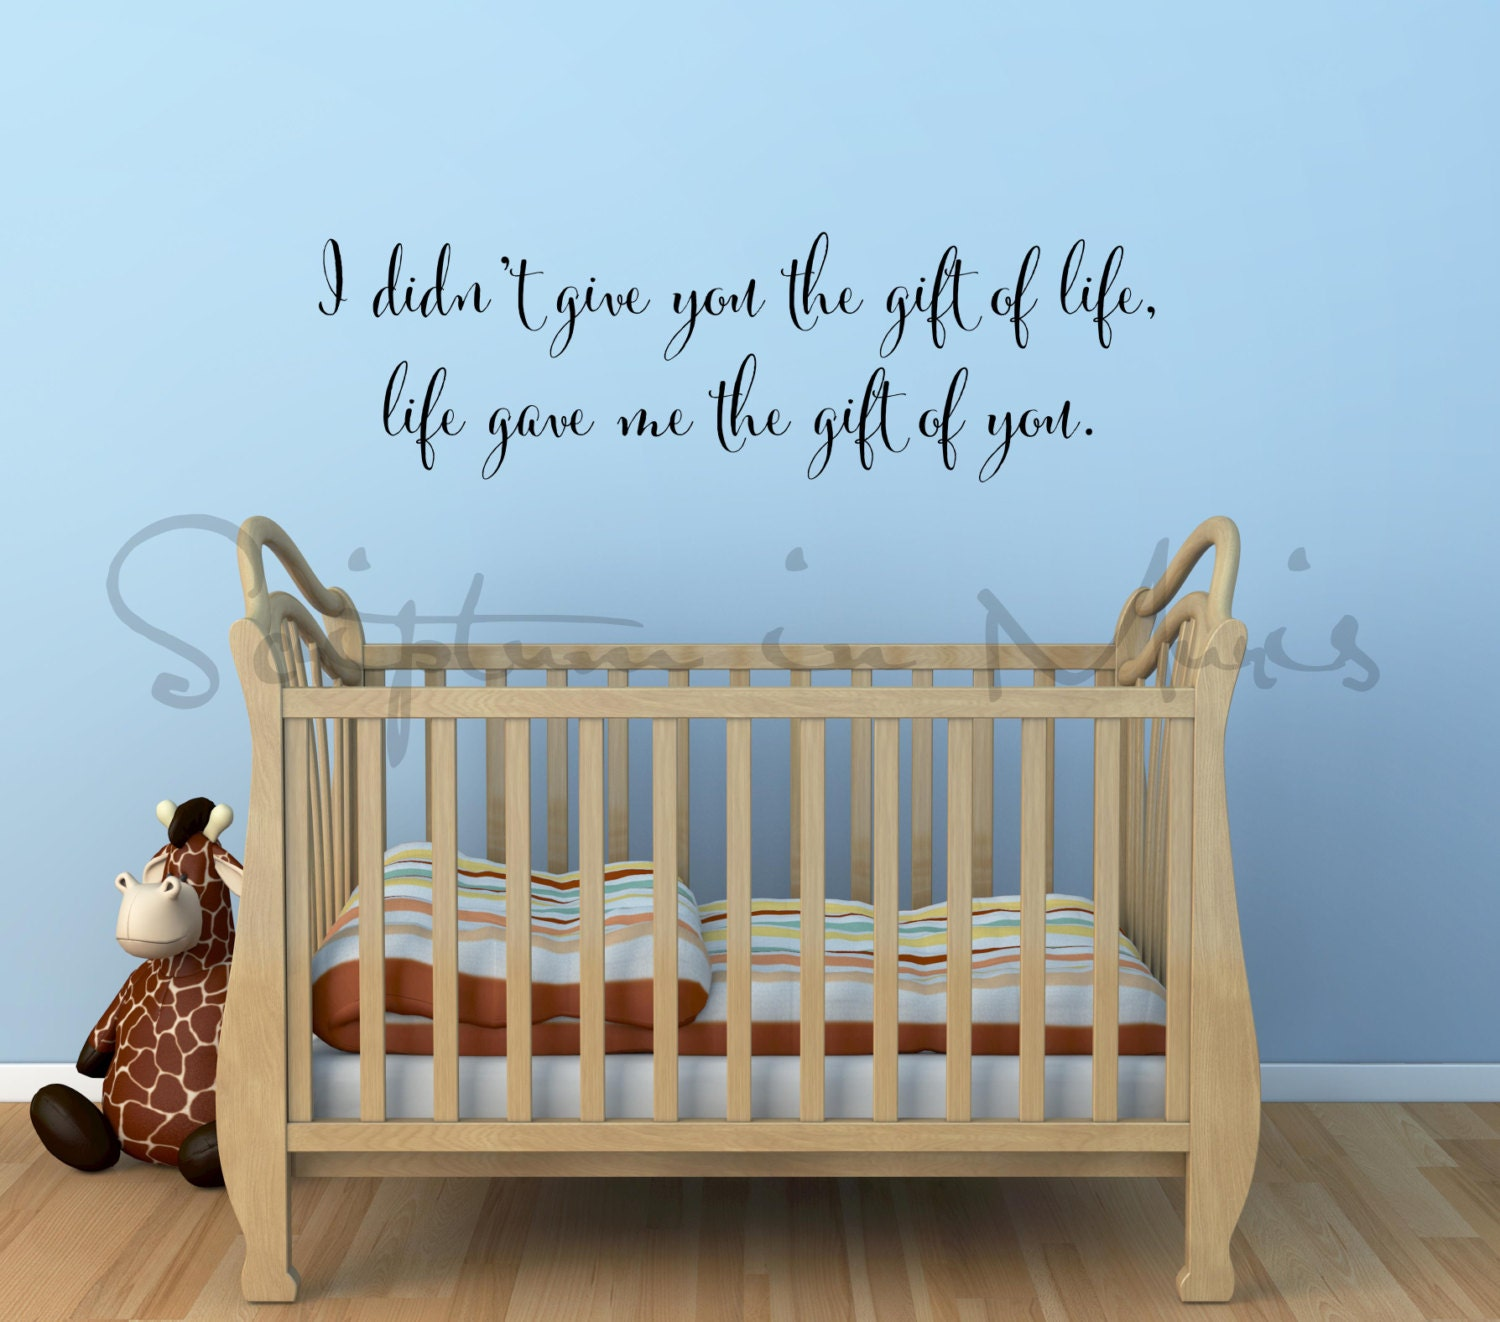 adoption quote i didn t give you the gift of life life zoom